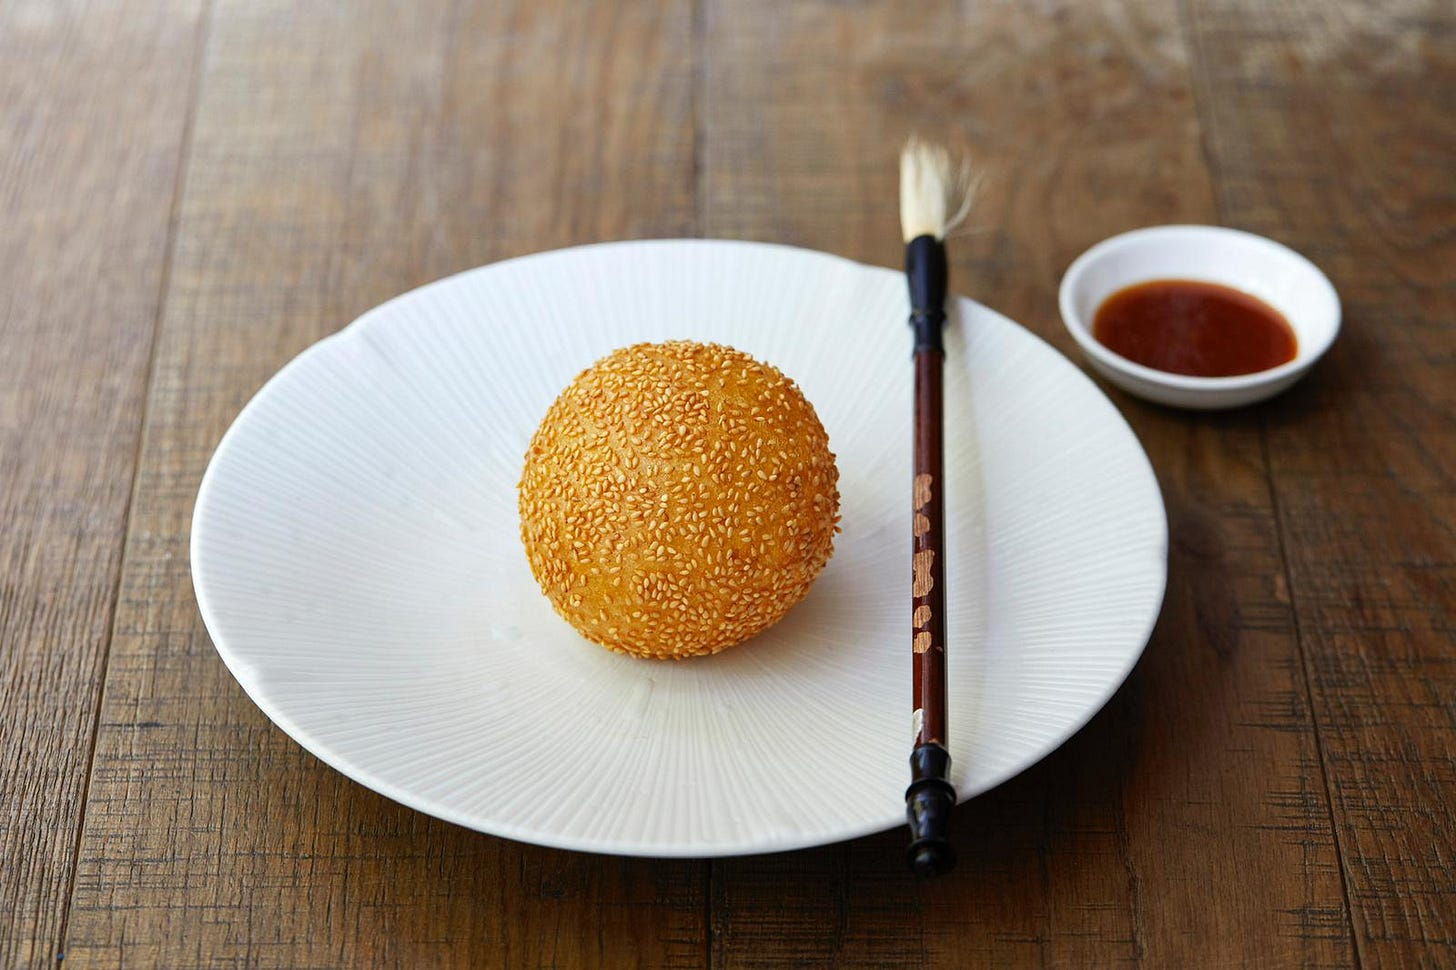 A puff ball pastry covered in sesame seeds on a small white plate. On the side of the plate is a paint brush and next to the plate is a small bowl of red coloured sauce. Plate, bowl and brush are on a wooden table